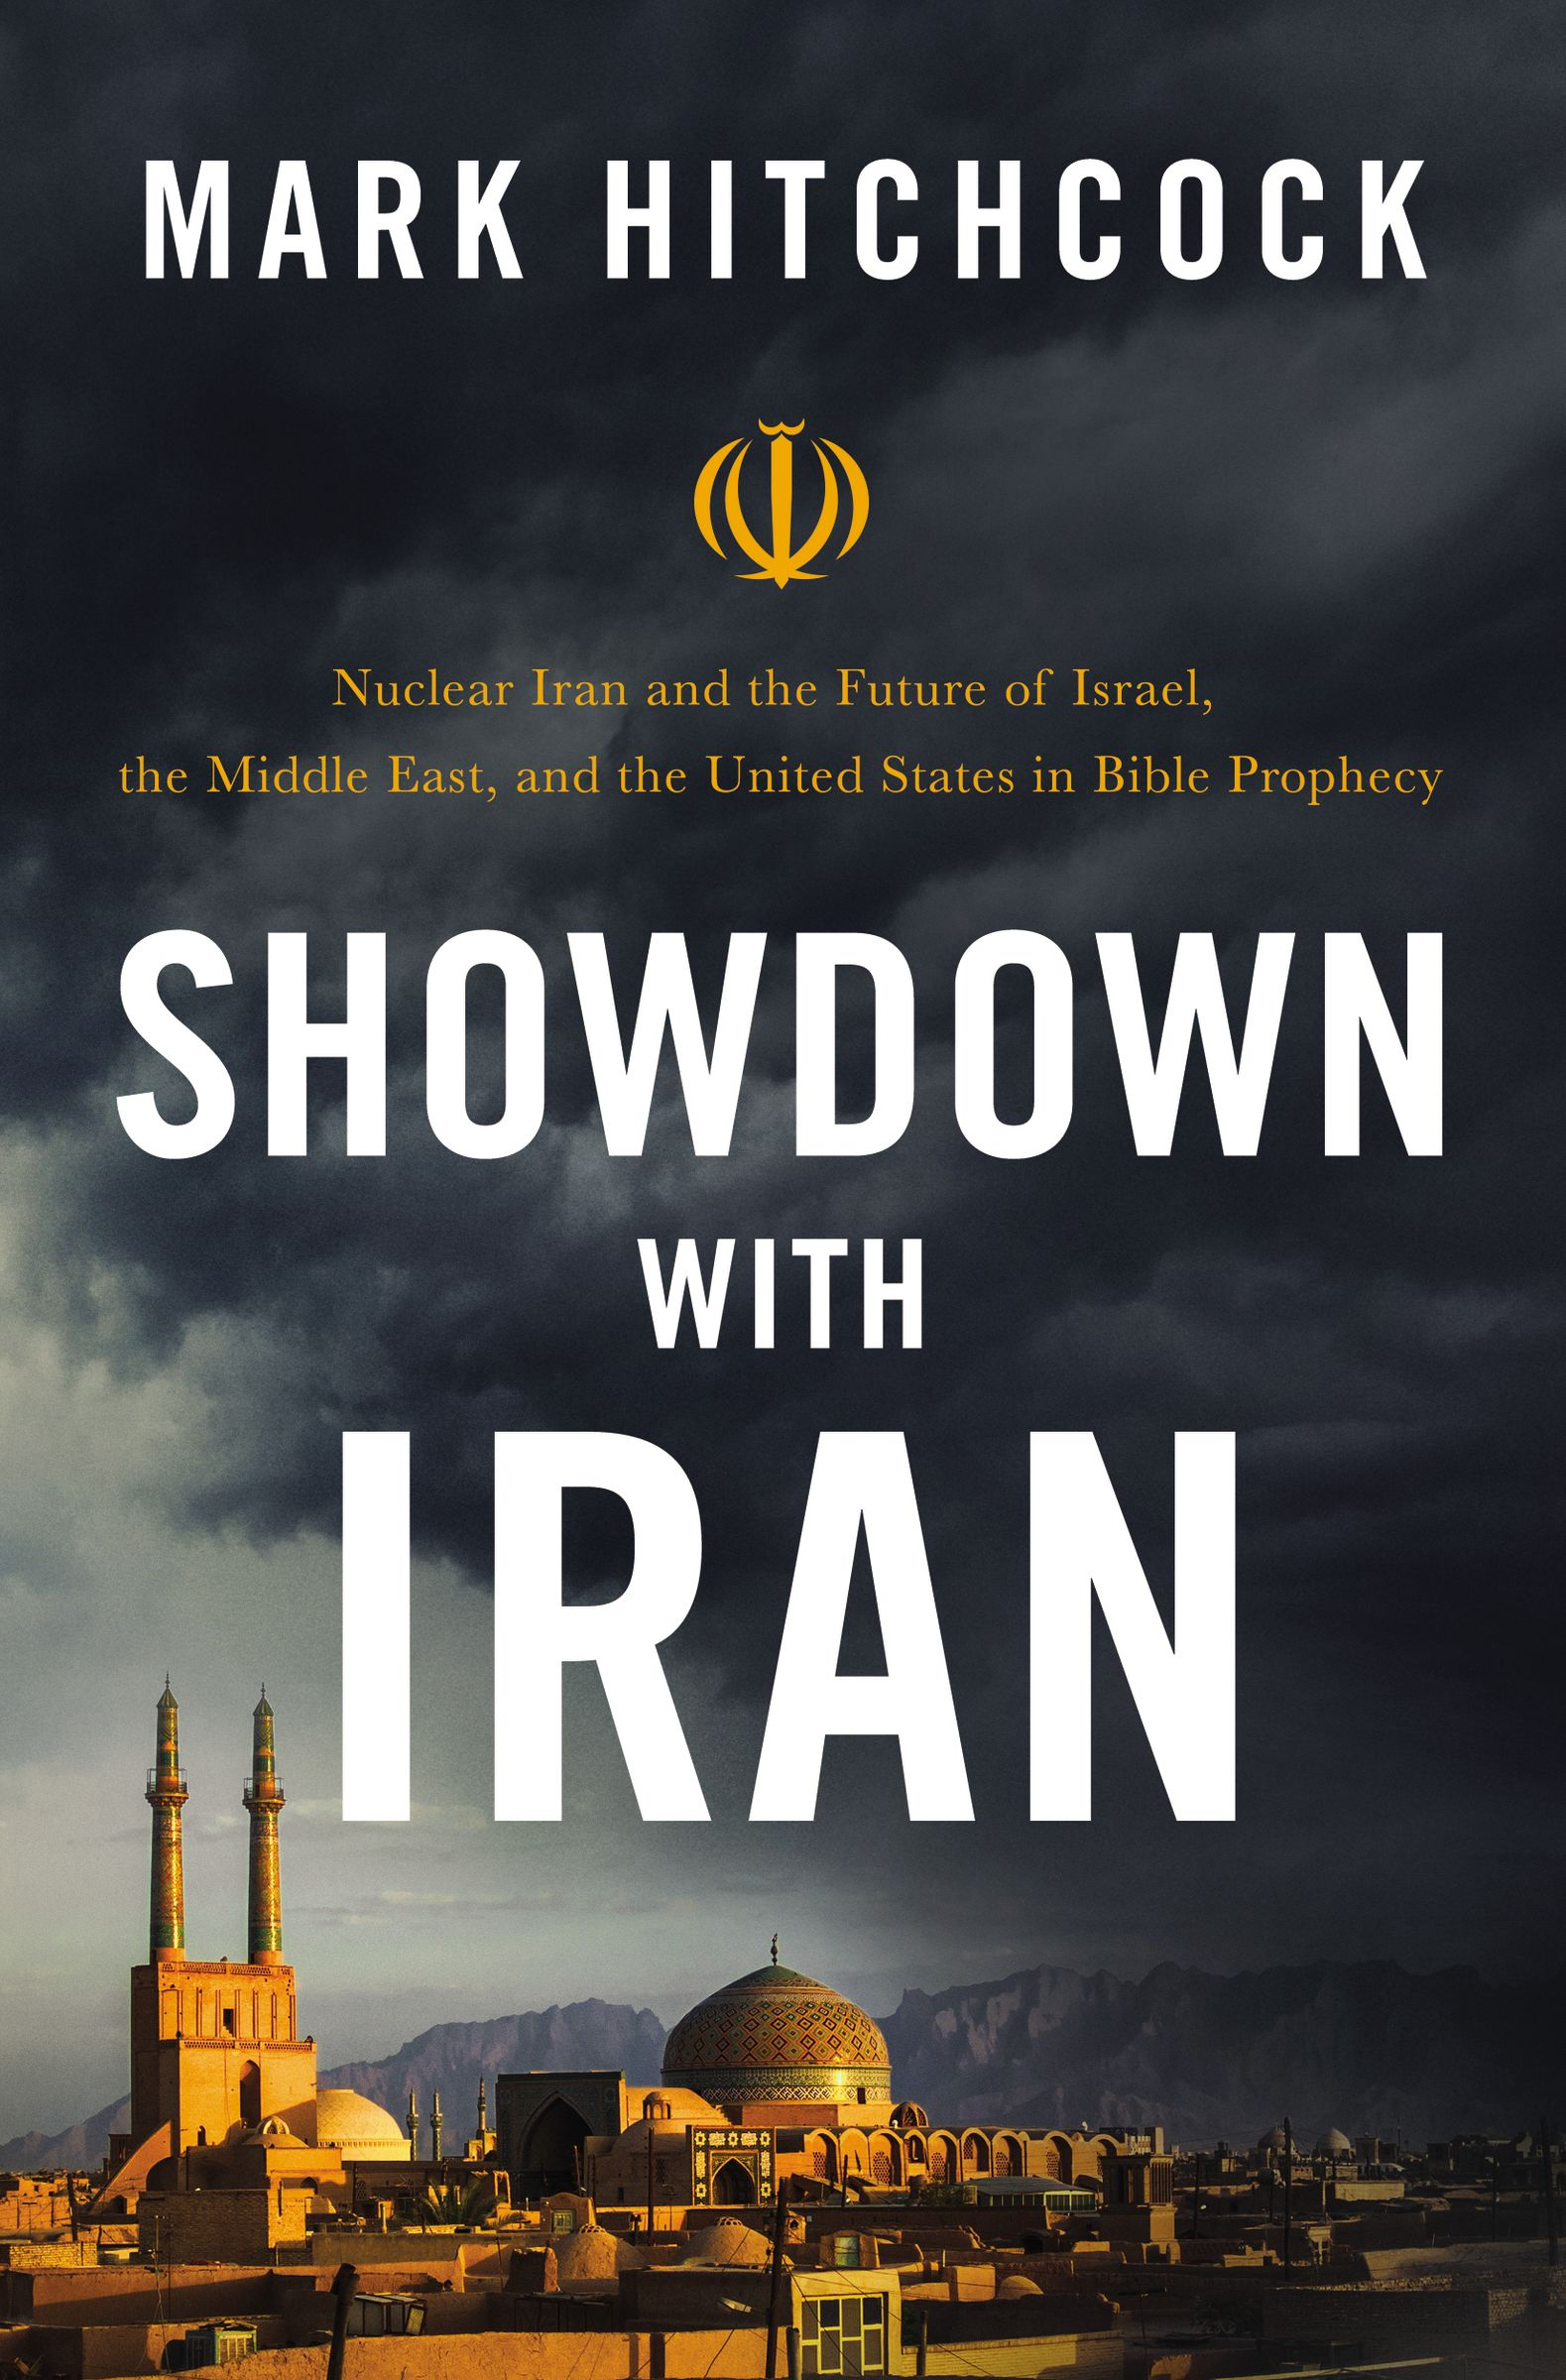 Showdown with Iran: Atomic Iran, Bible Prophecy, and the Coming Middle East War